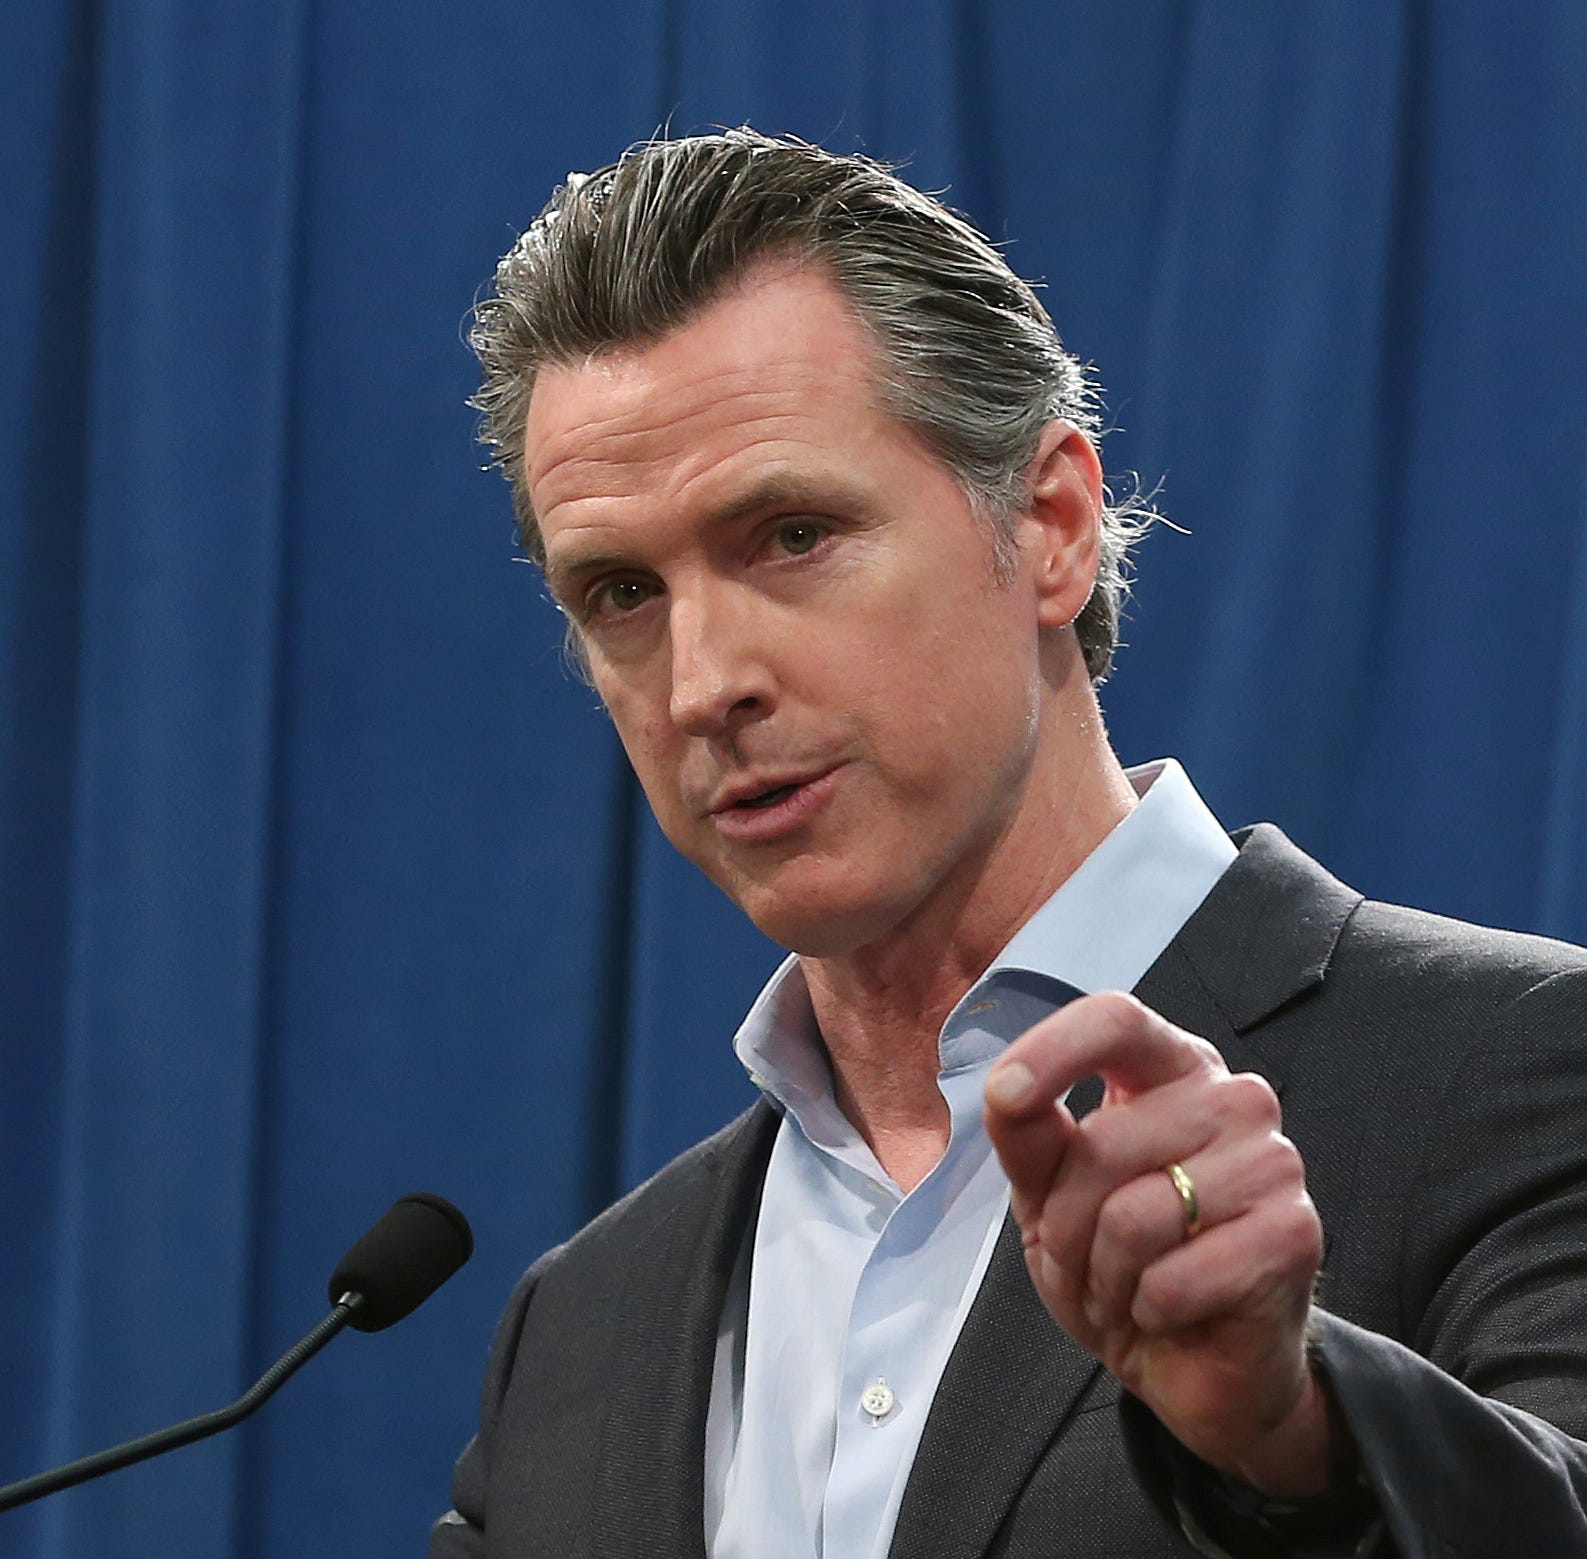 Op-ed: Gavin Newsom downgrades Brown's pet projects in a rebuke to former governor